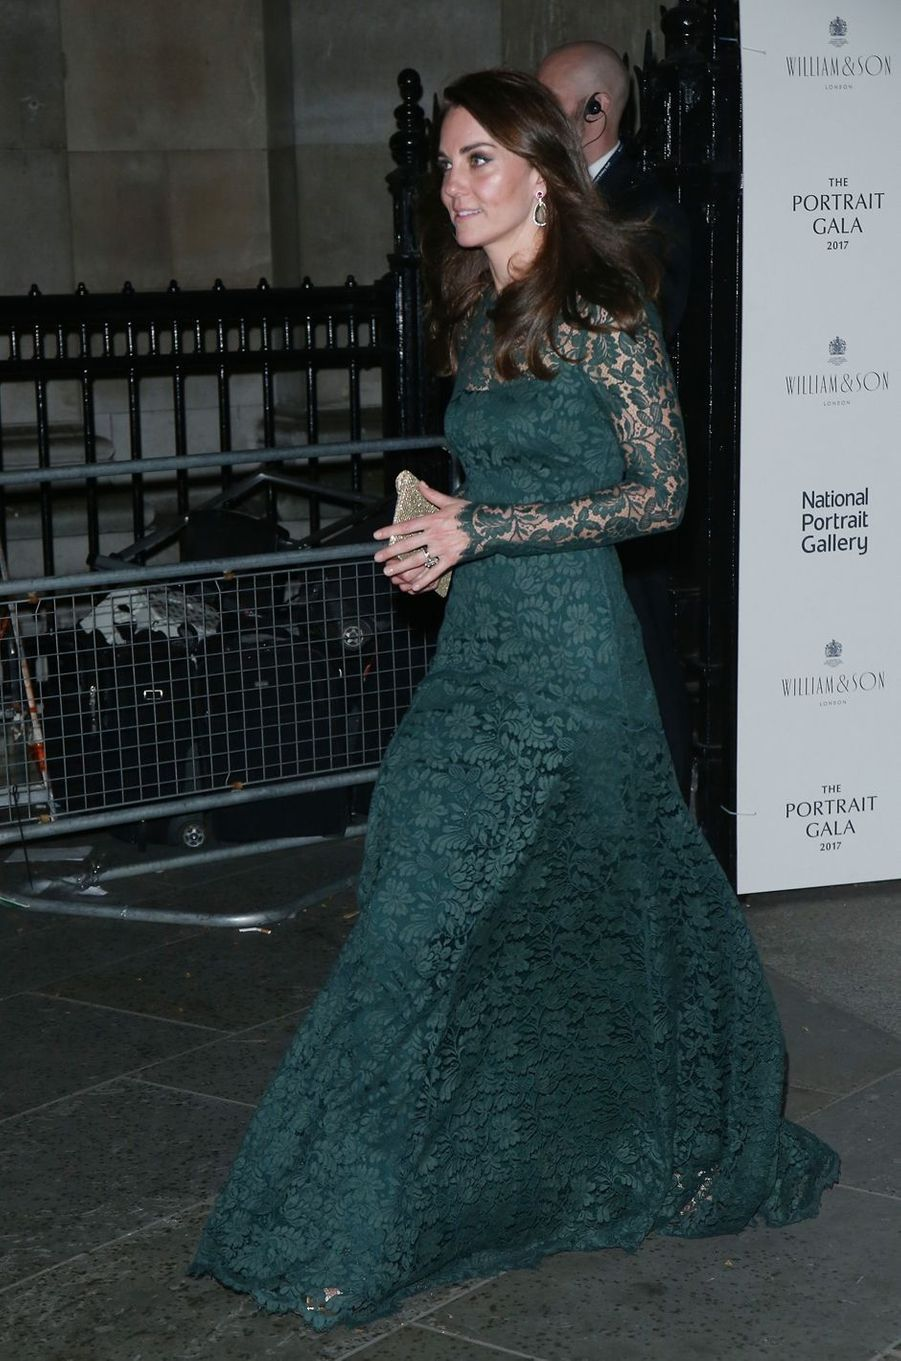 La duchesse de Cambridge, née Kate Middleton, à Londres le 28 mars 2017